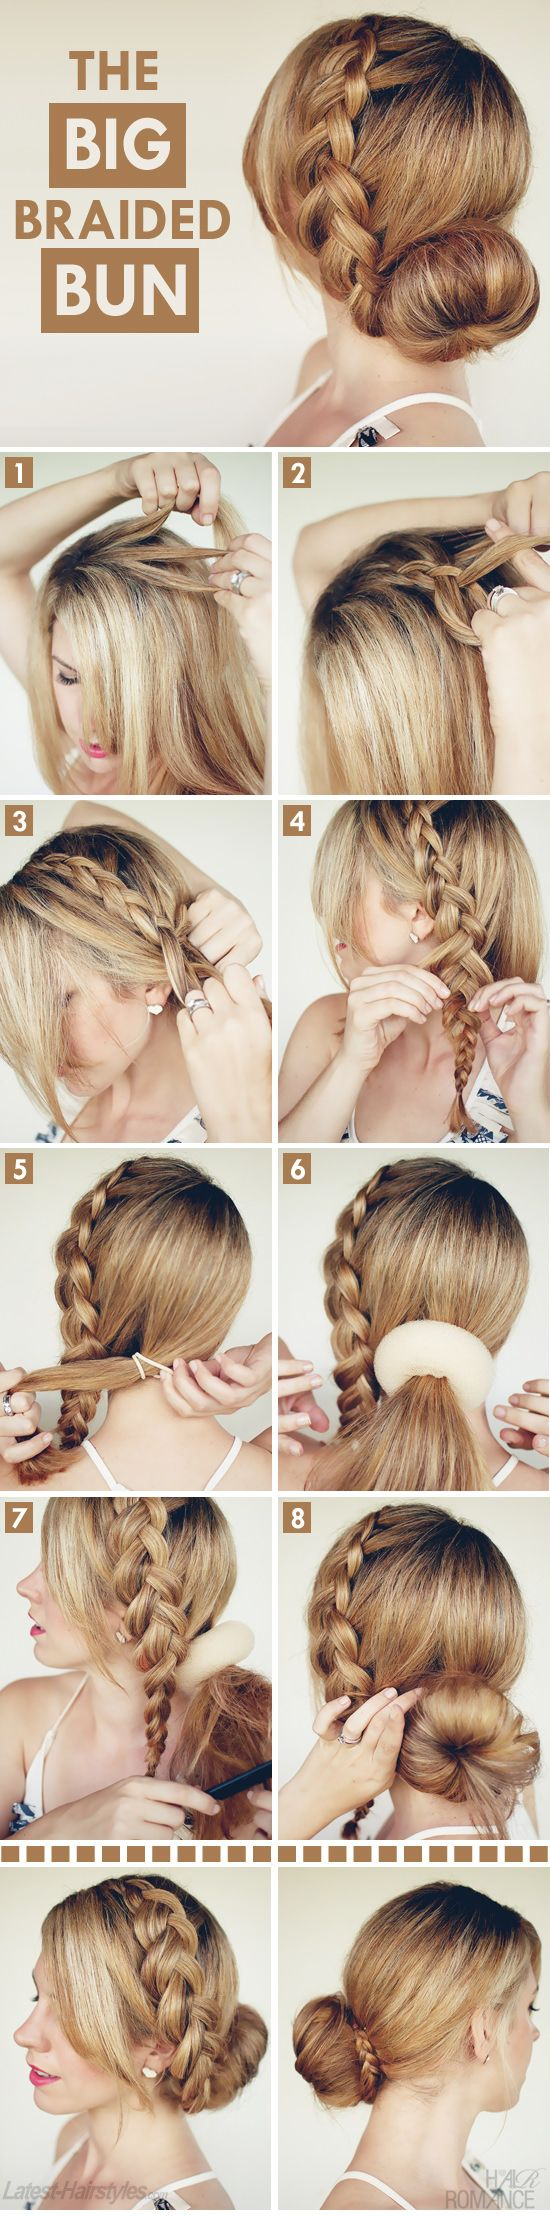 The big braided bun statement hairstyles for the holiday party